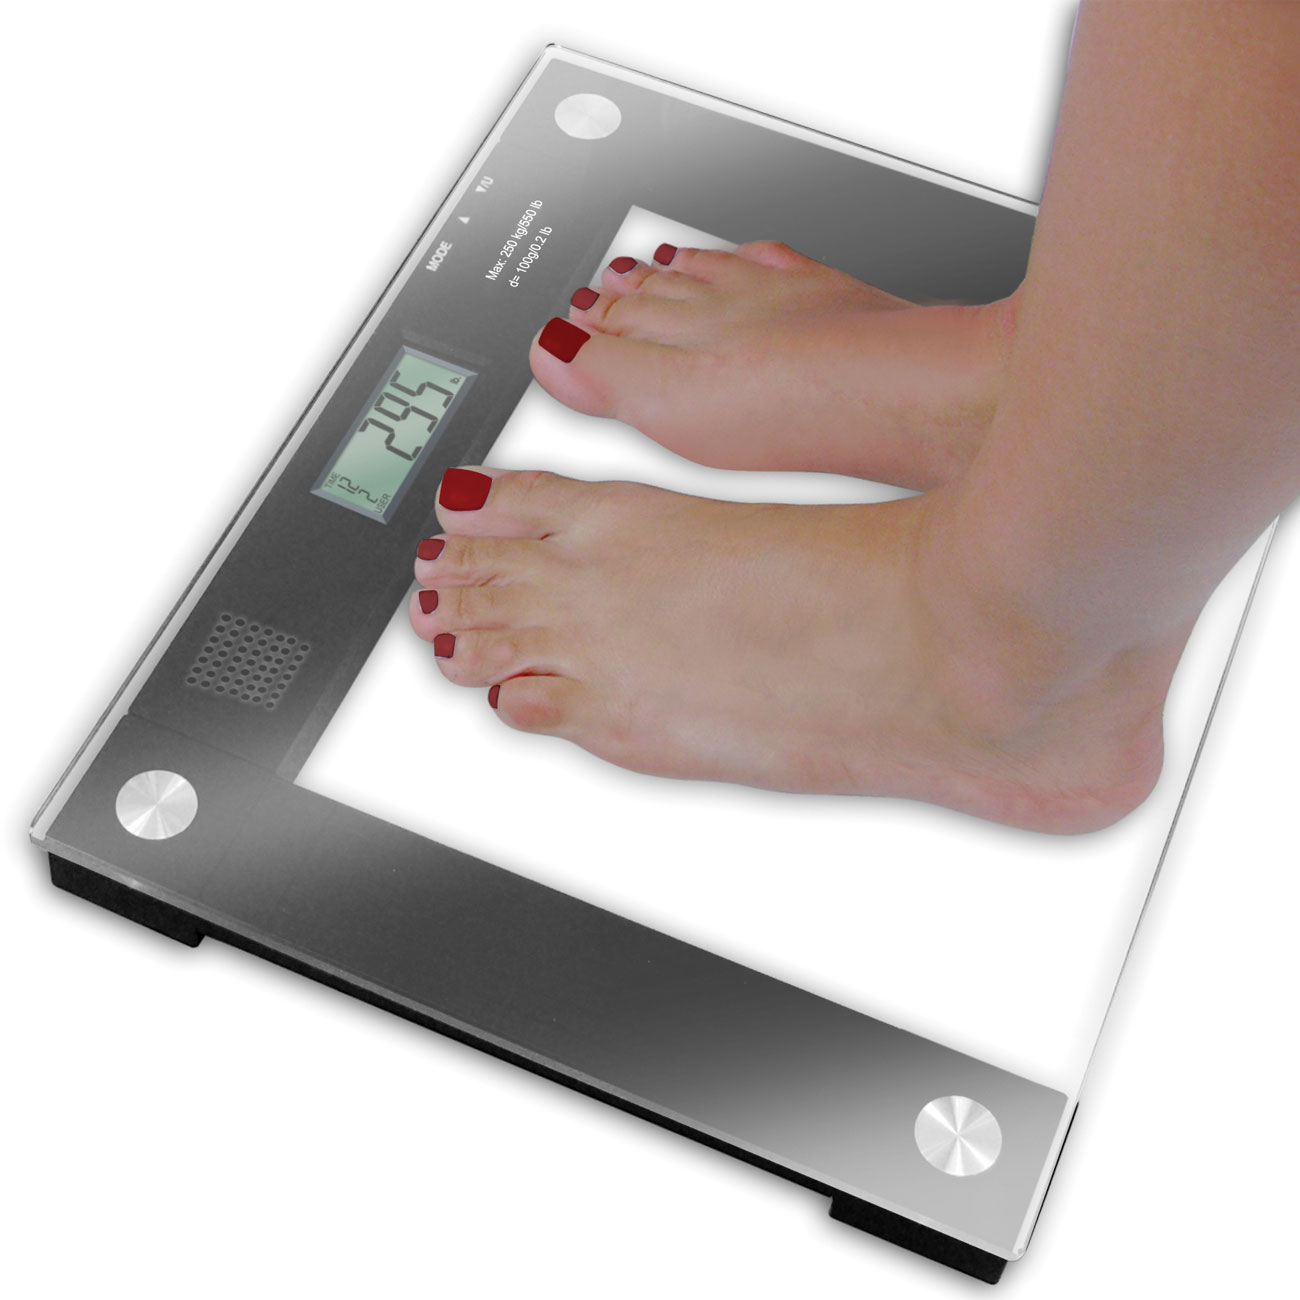 Extra Wide Talking Scale - 550-lb Capacity Price: $54.95